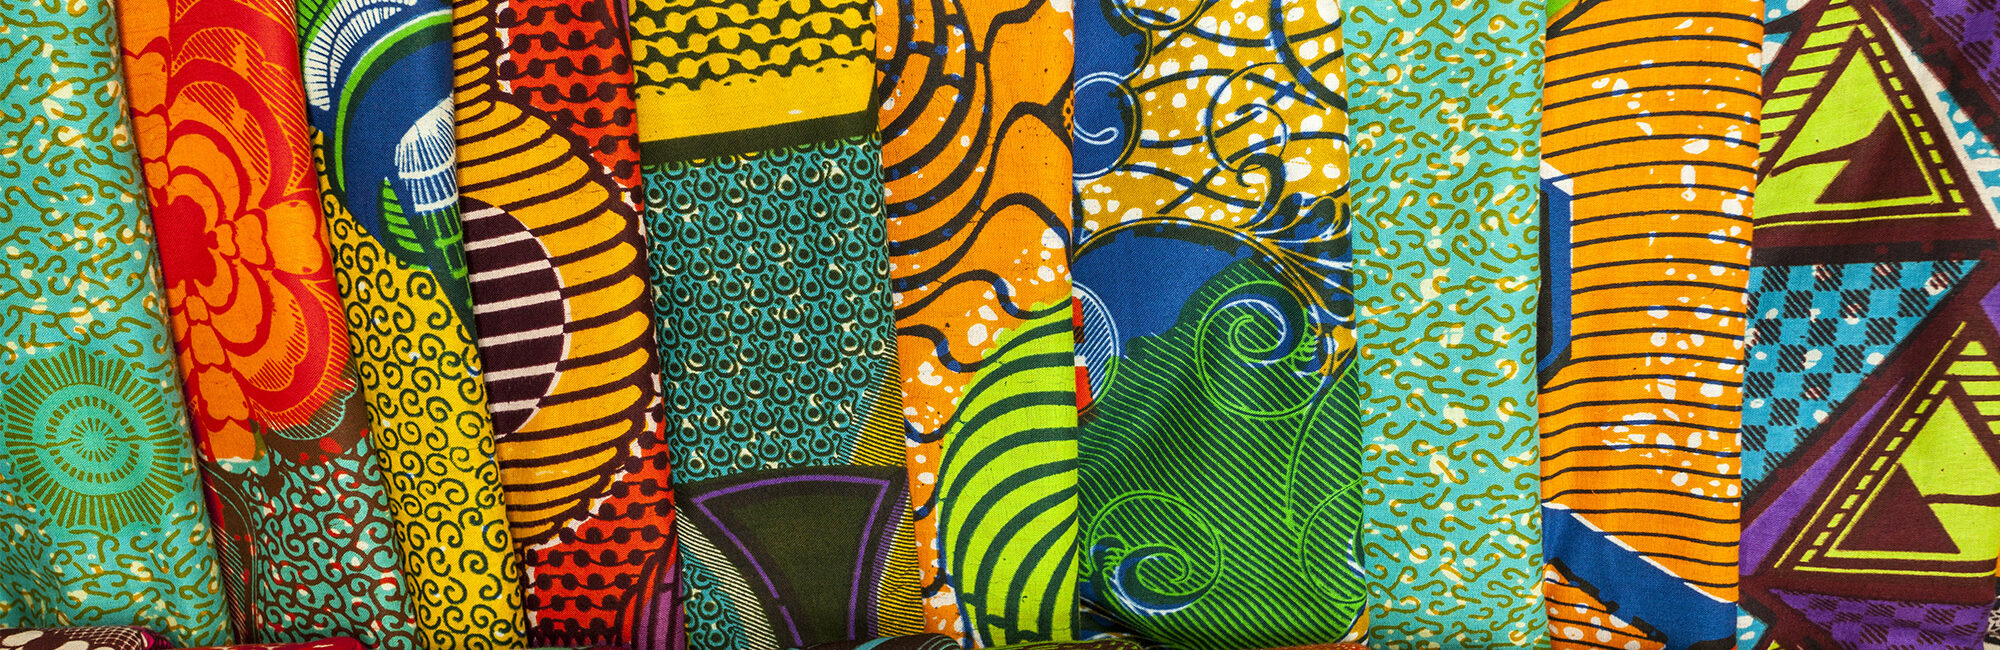 african textiles itme 2020